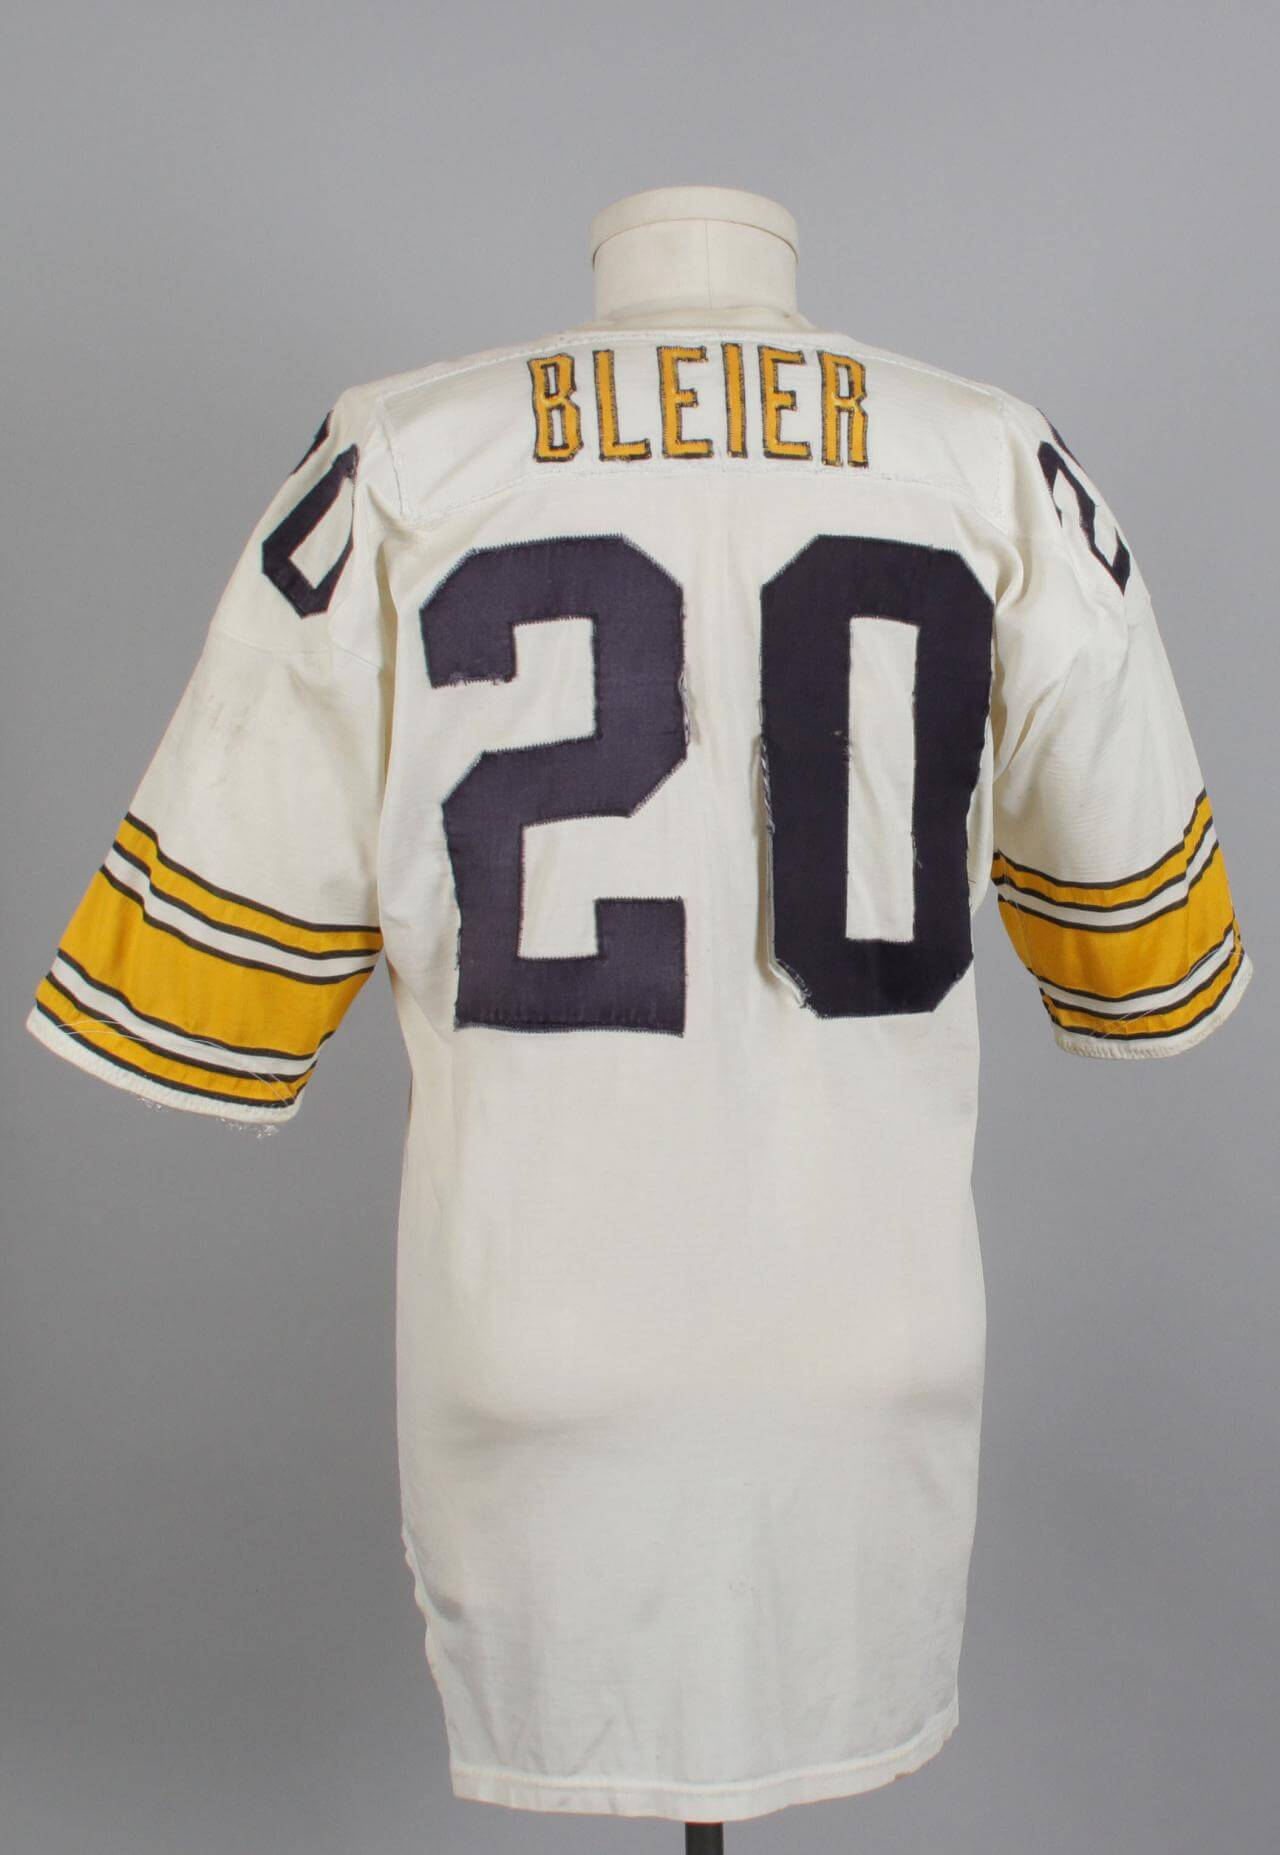 ... promo code for pittsburgh steelers mid 70s rocky bleier game worn white  durene jersey worn post 1157f42d6